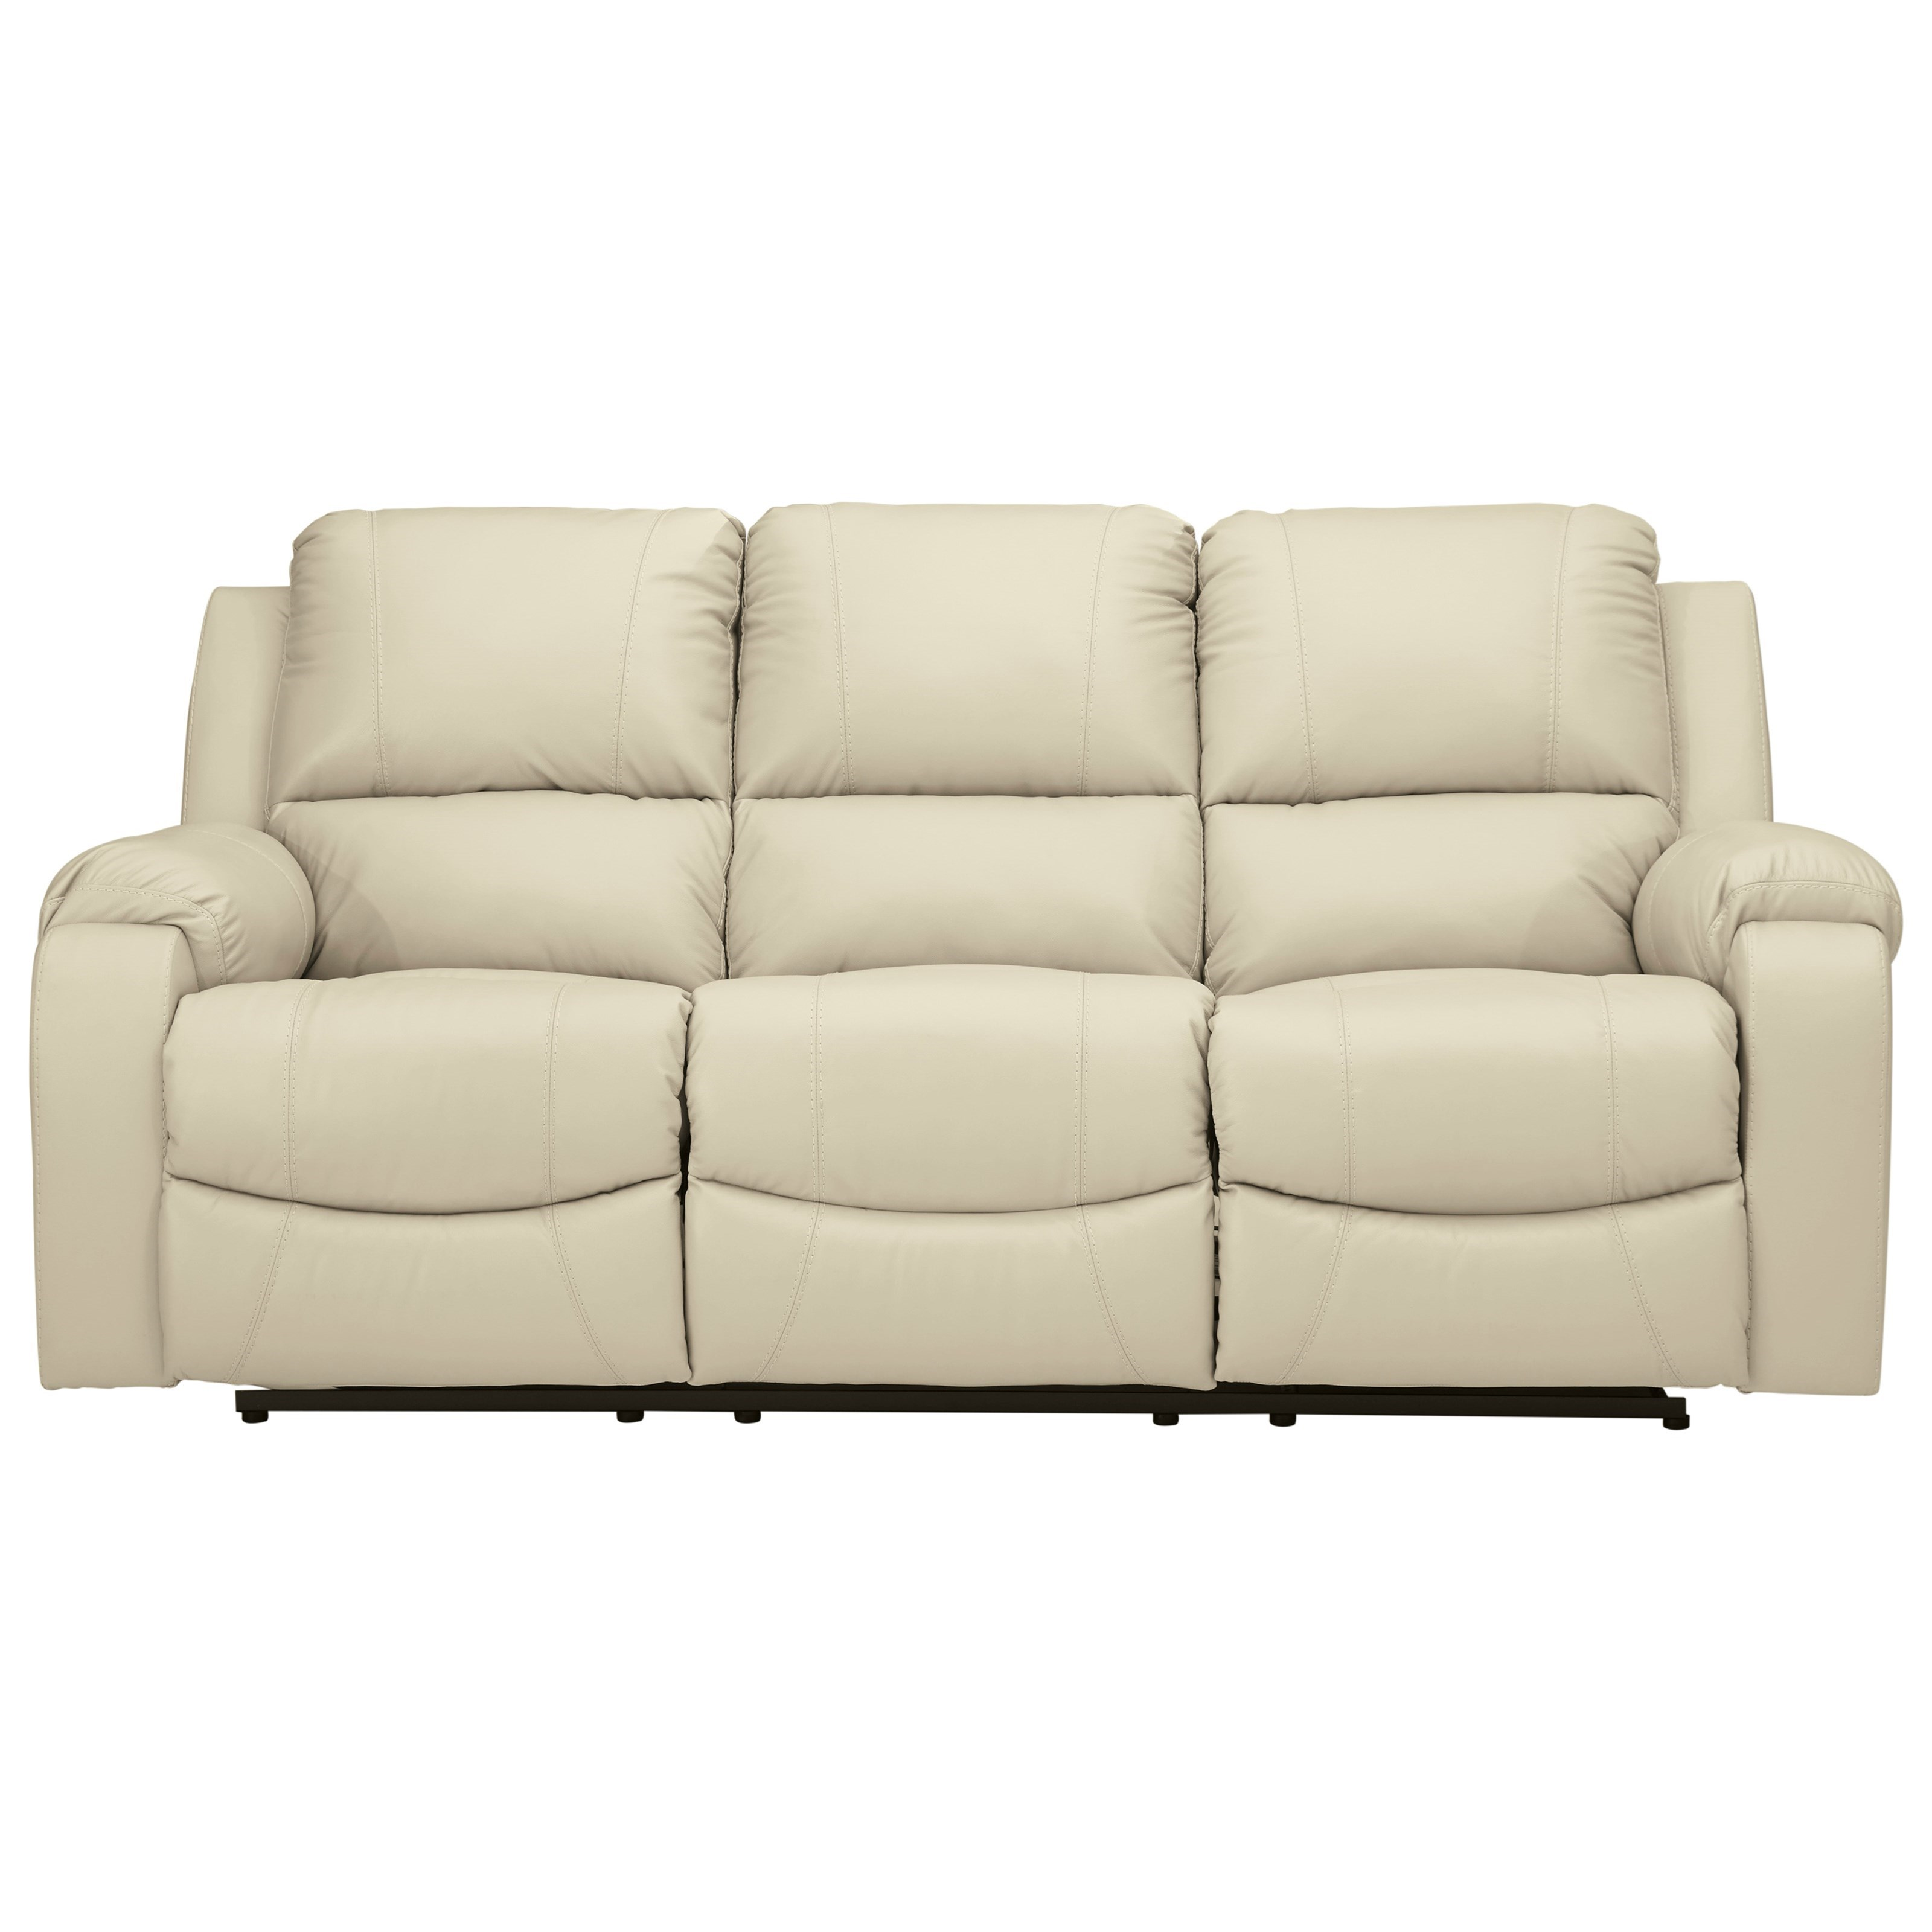 Rackingburg Reclining Sofa by Ashley Signature Design at Rooms and Rest